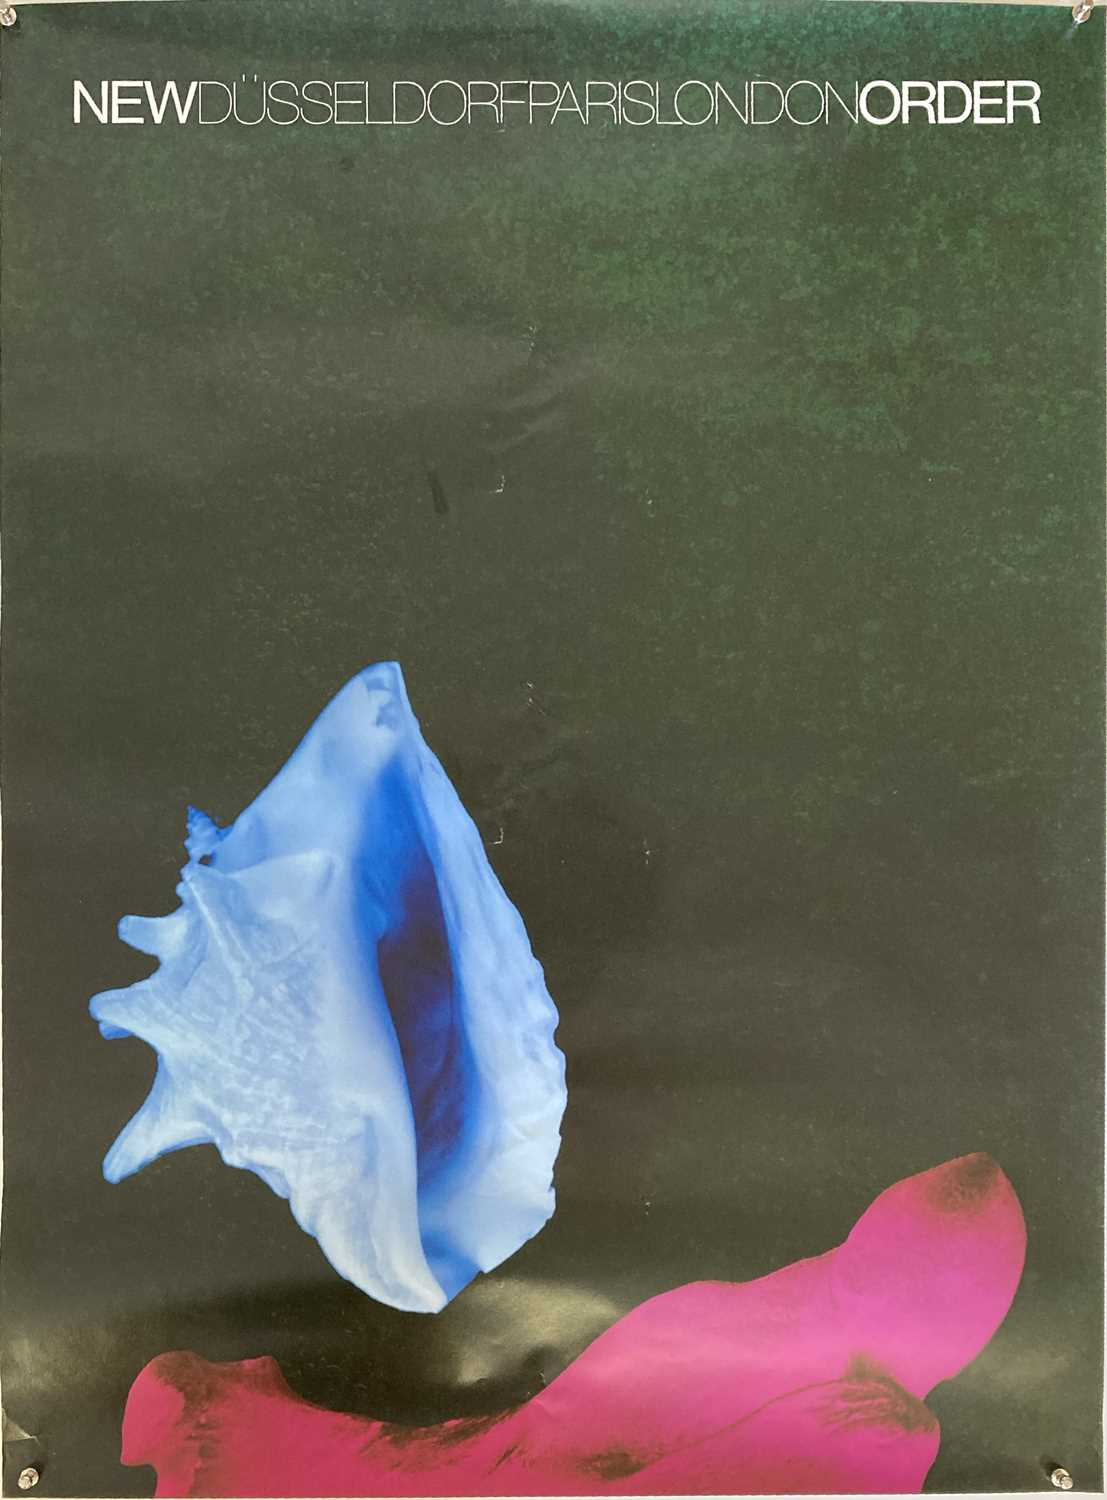 Lot 28 - NEW ORDER 1987 TOUR POSTER.